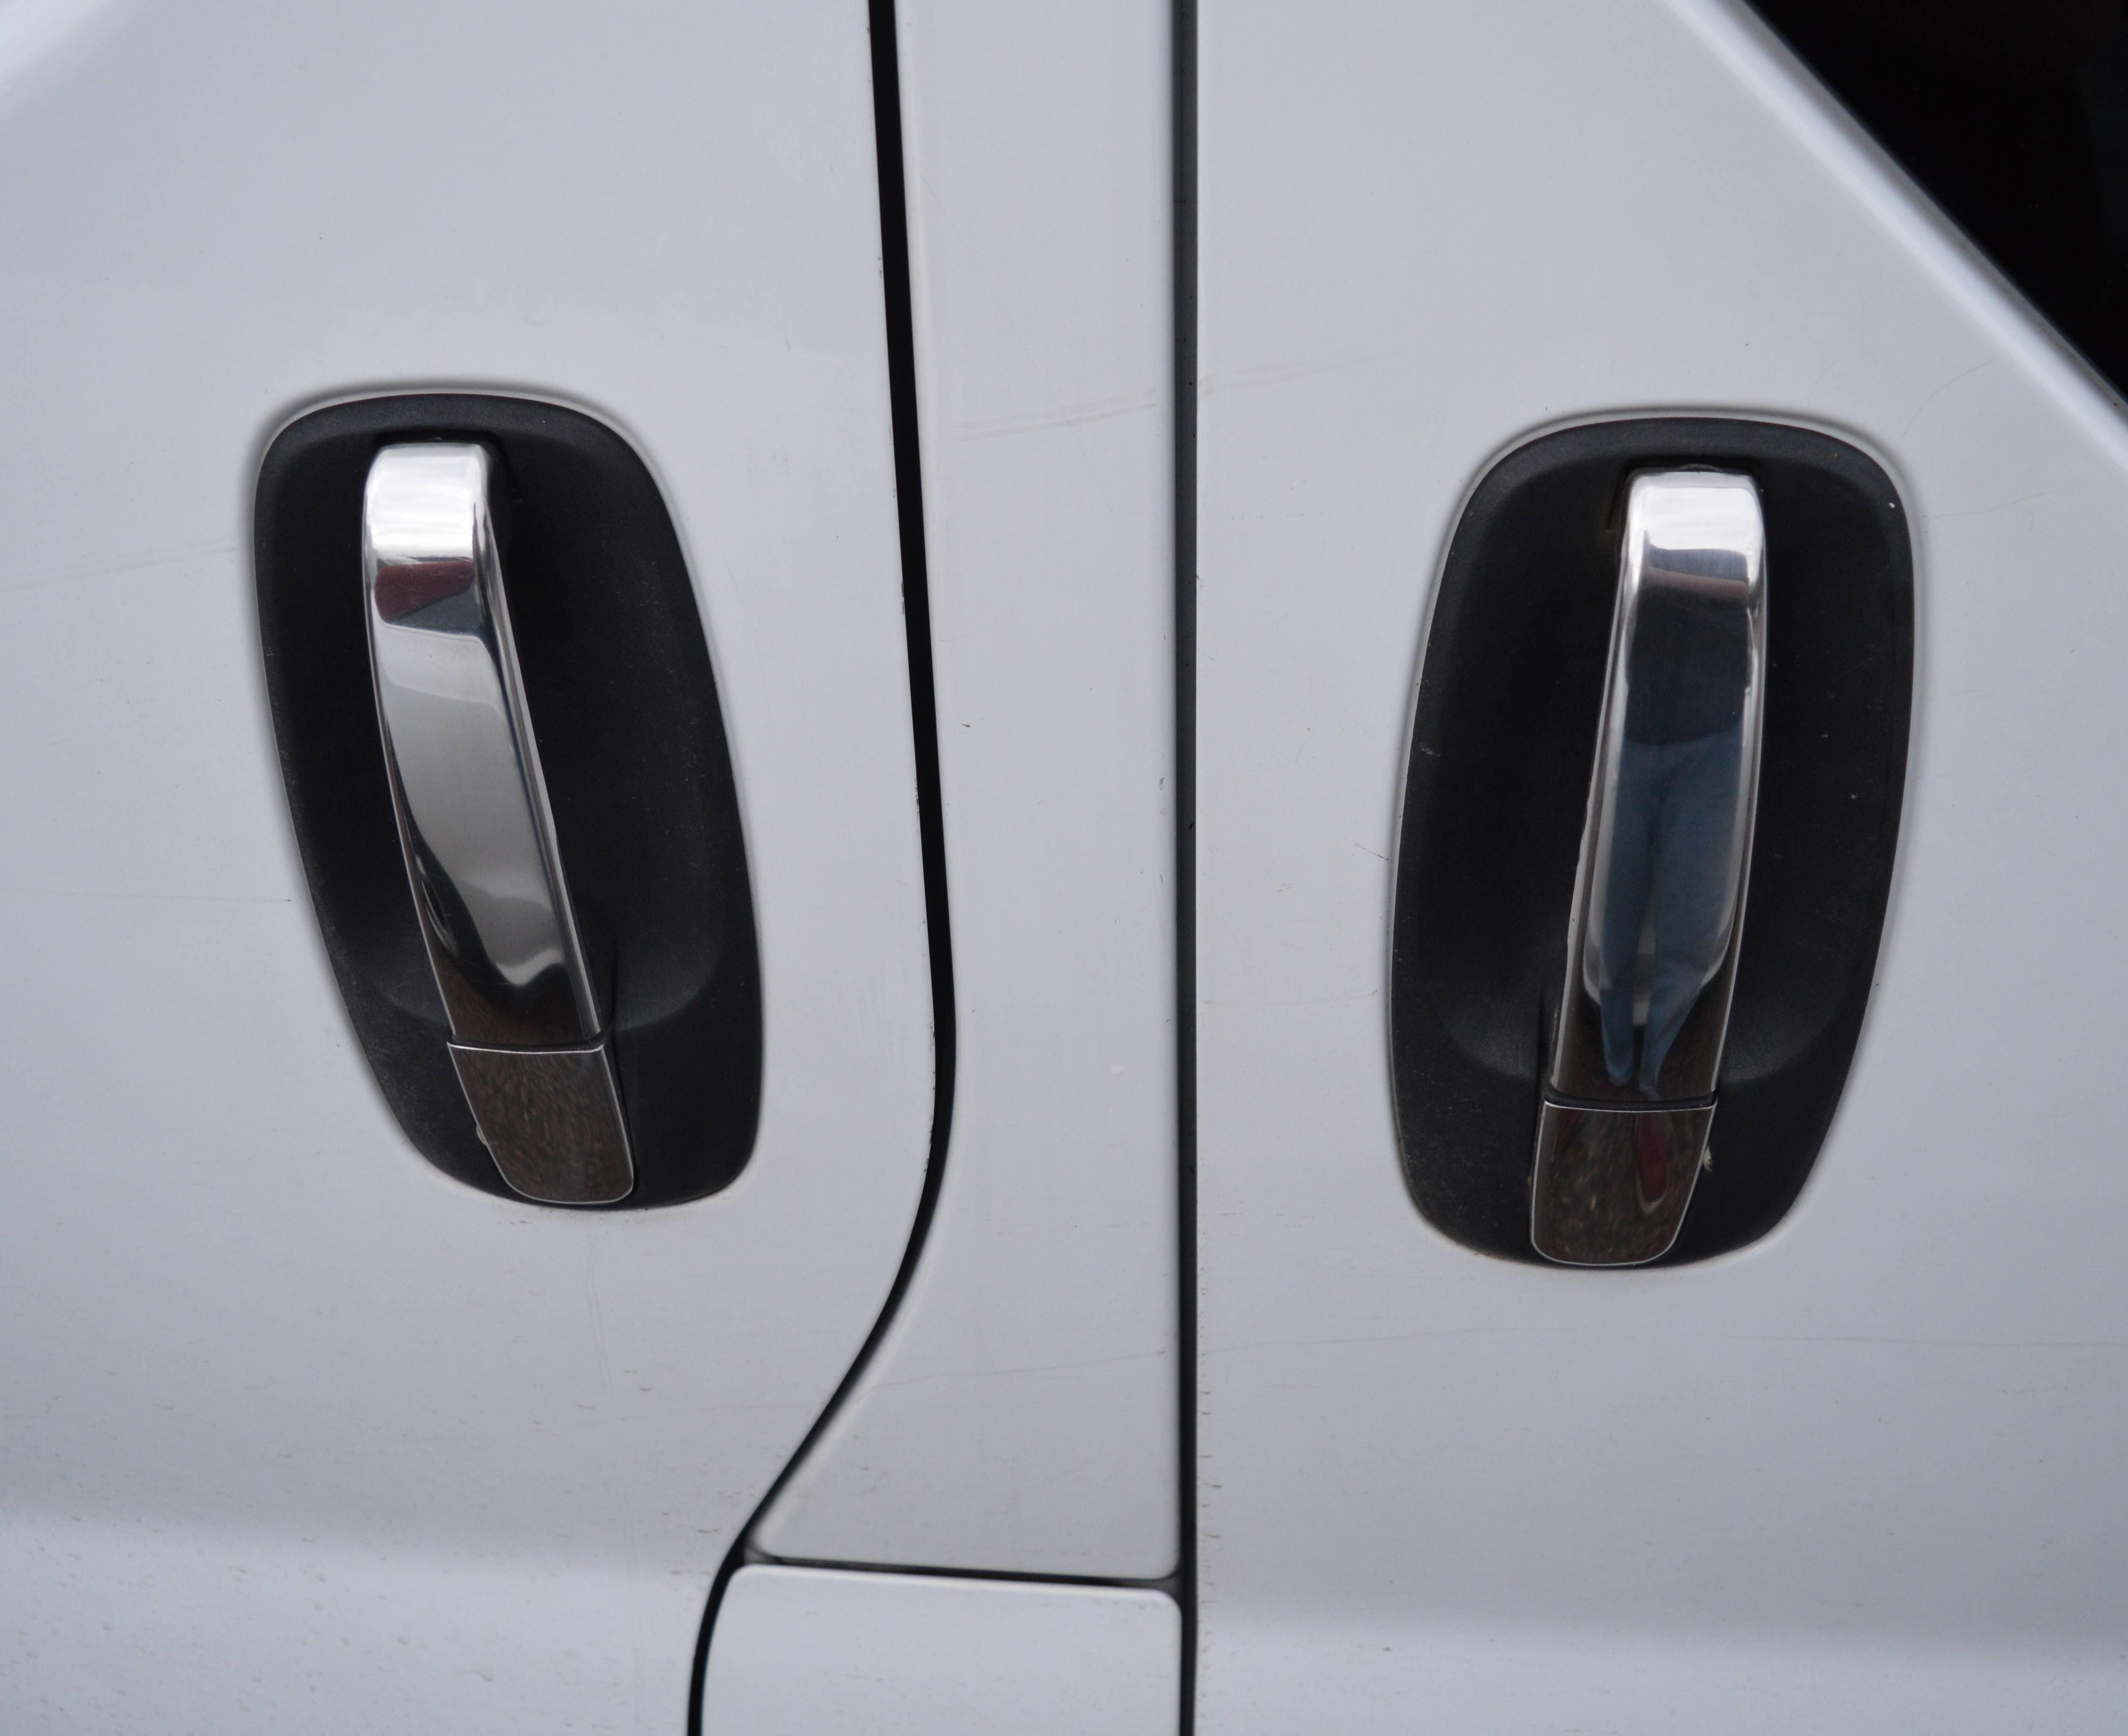 renault trafic mk1 wiring diagram with Vivaro Rear Door Handle Diagram on Classic Mini Cooper Diy Articles moreover Watch moreover Motor Vehicle Wiring also 813 Simplifier Le Faisceau  c3 a9lectrique Derbi Senda besides Vivaro Rear Door Handle Diagram.